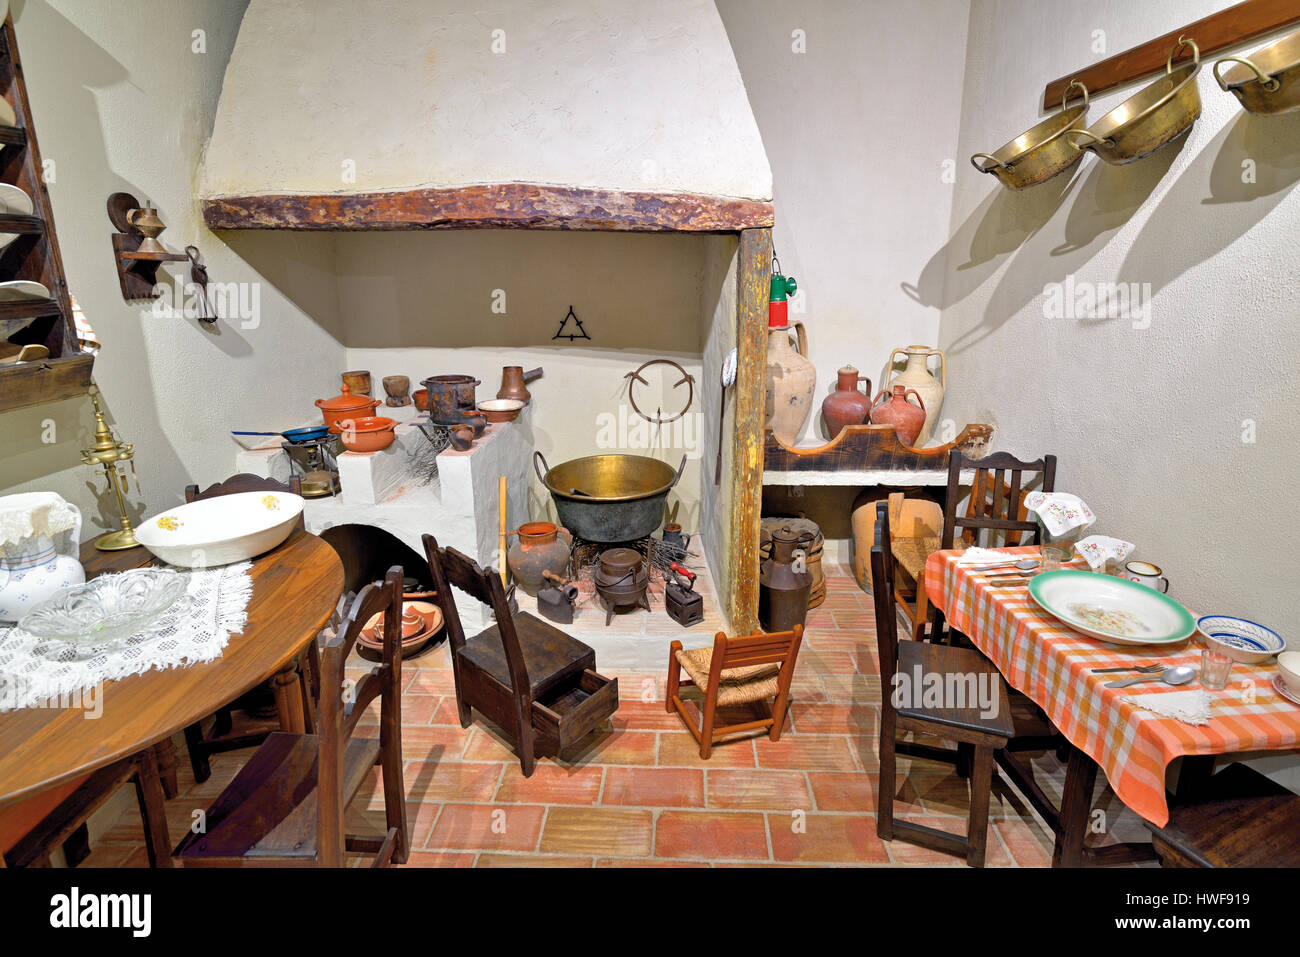 Traditional kitchen of an algarvian rural house in the Museu Municipal in Aljezur - Stock Image